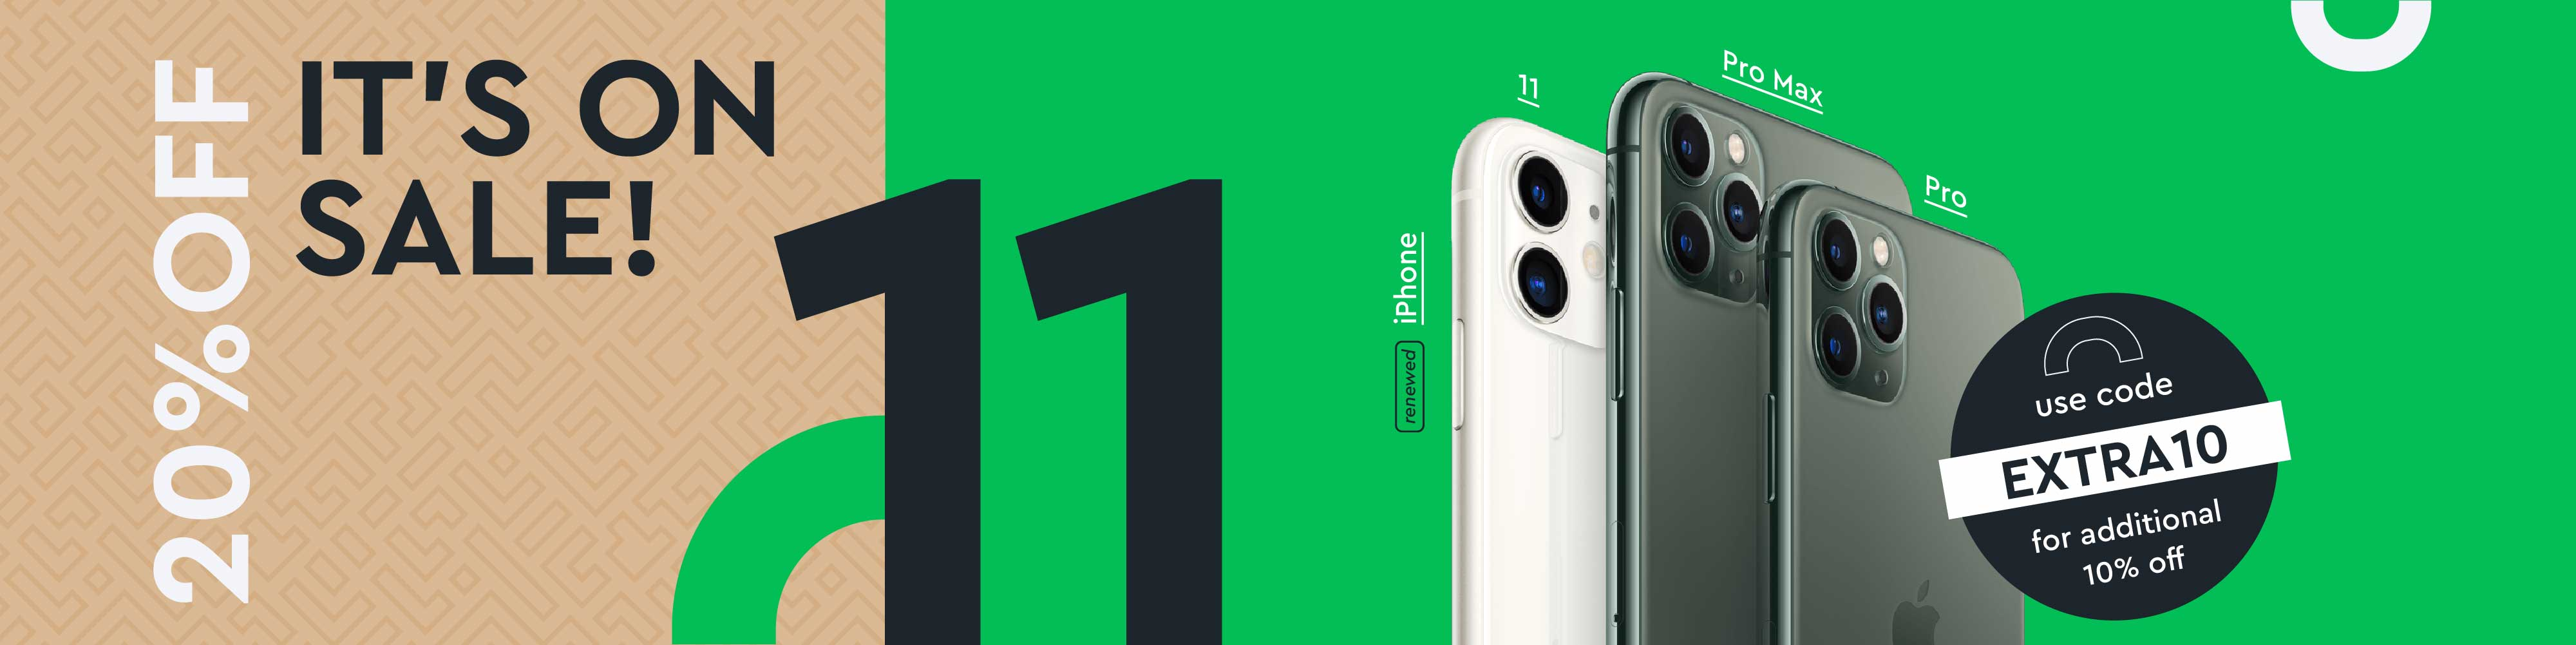 Extra 10% off - iPhone 11